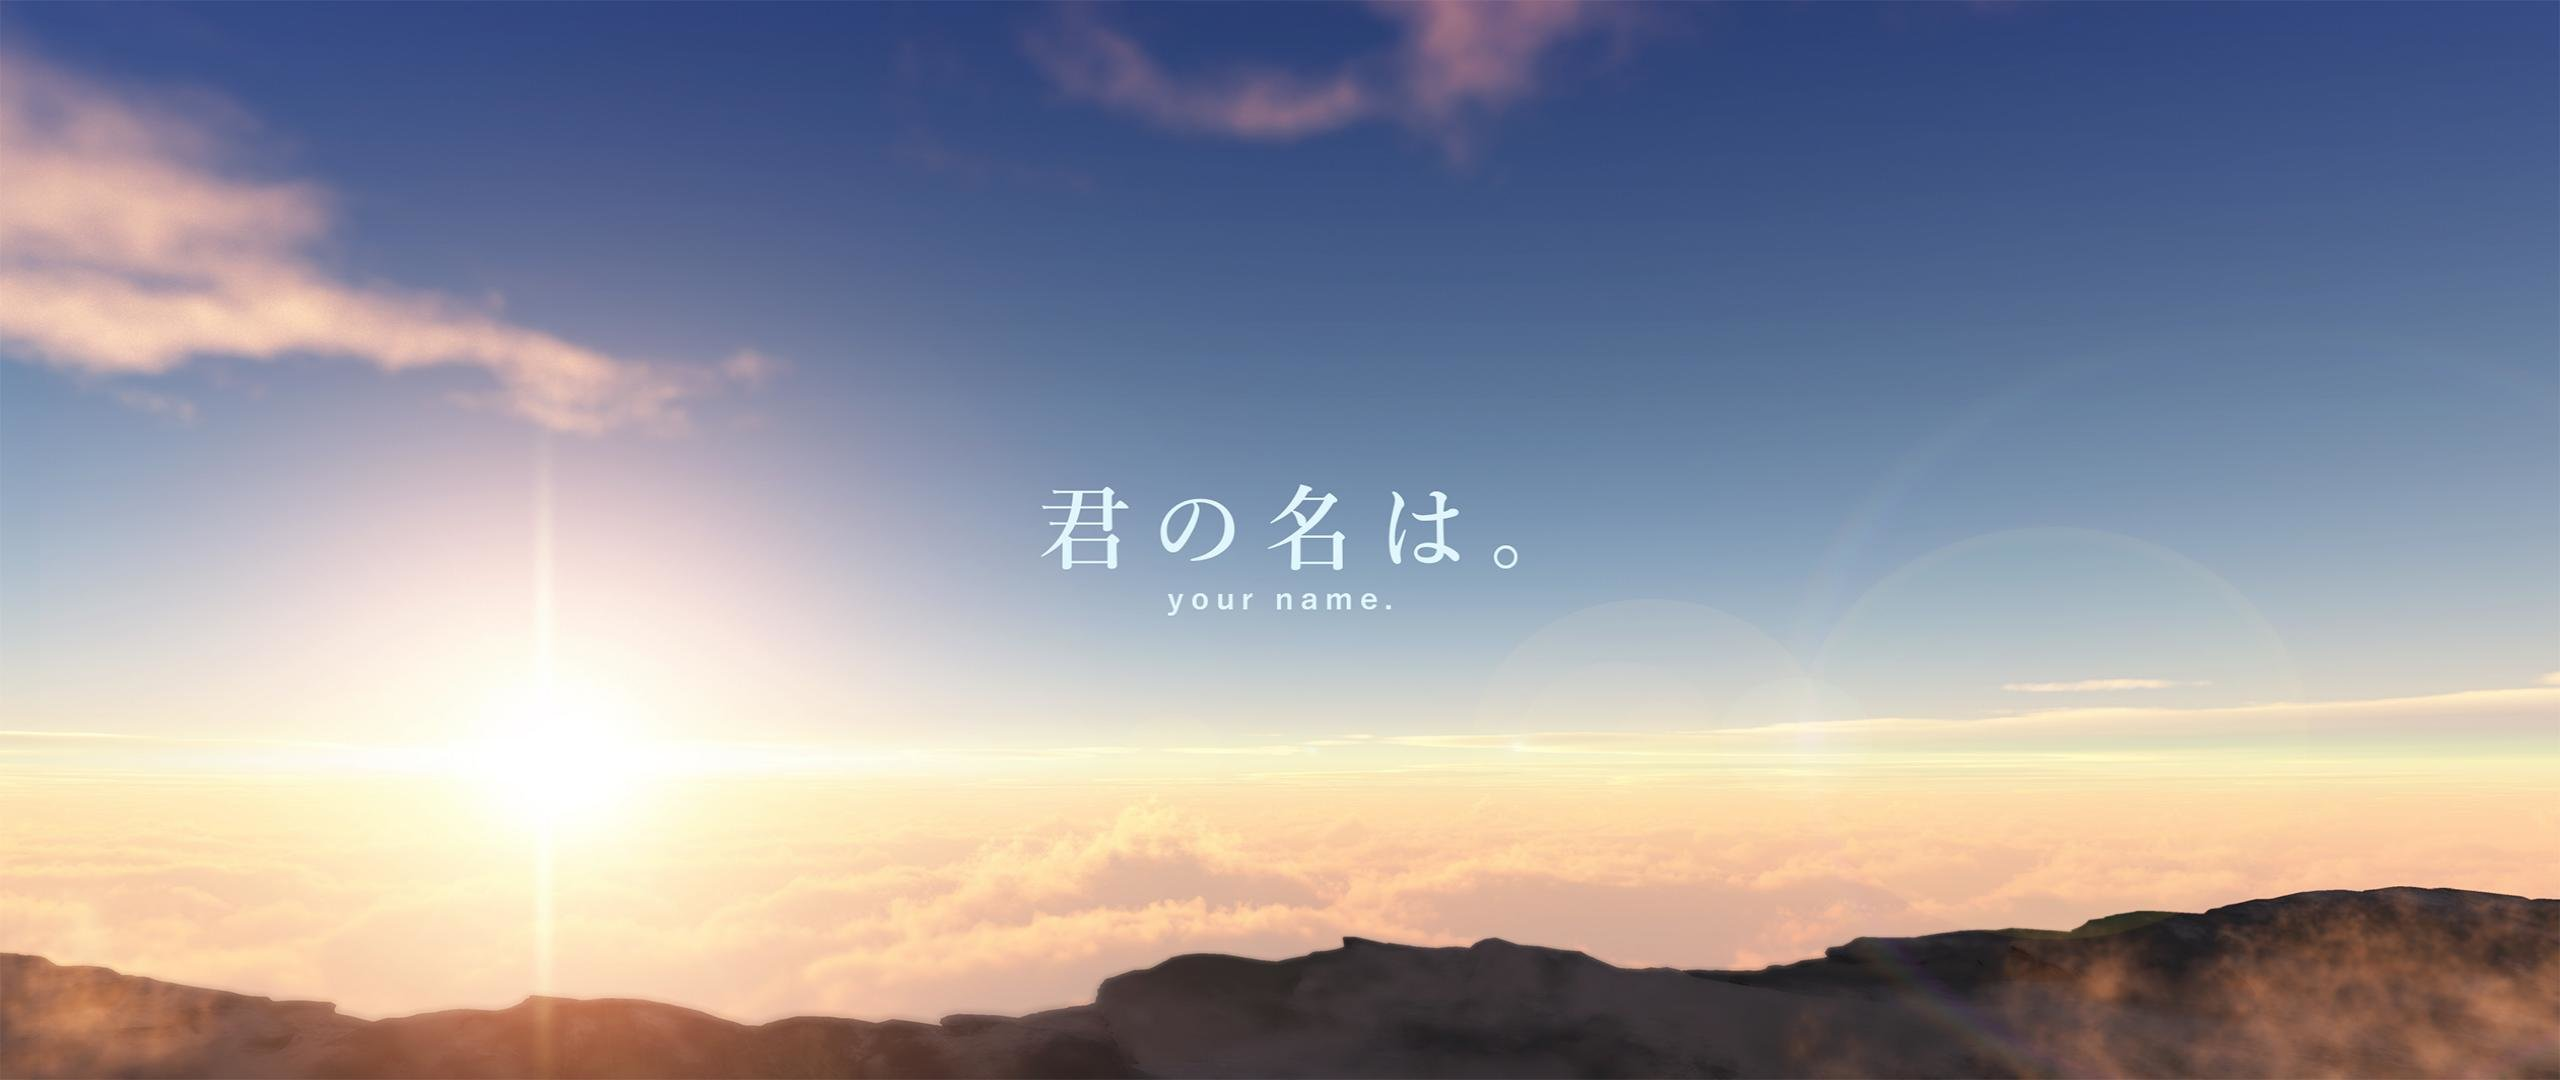 High Resolution Your Name Hd Background Id Bts Wallpaper